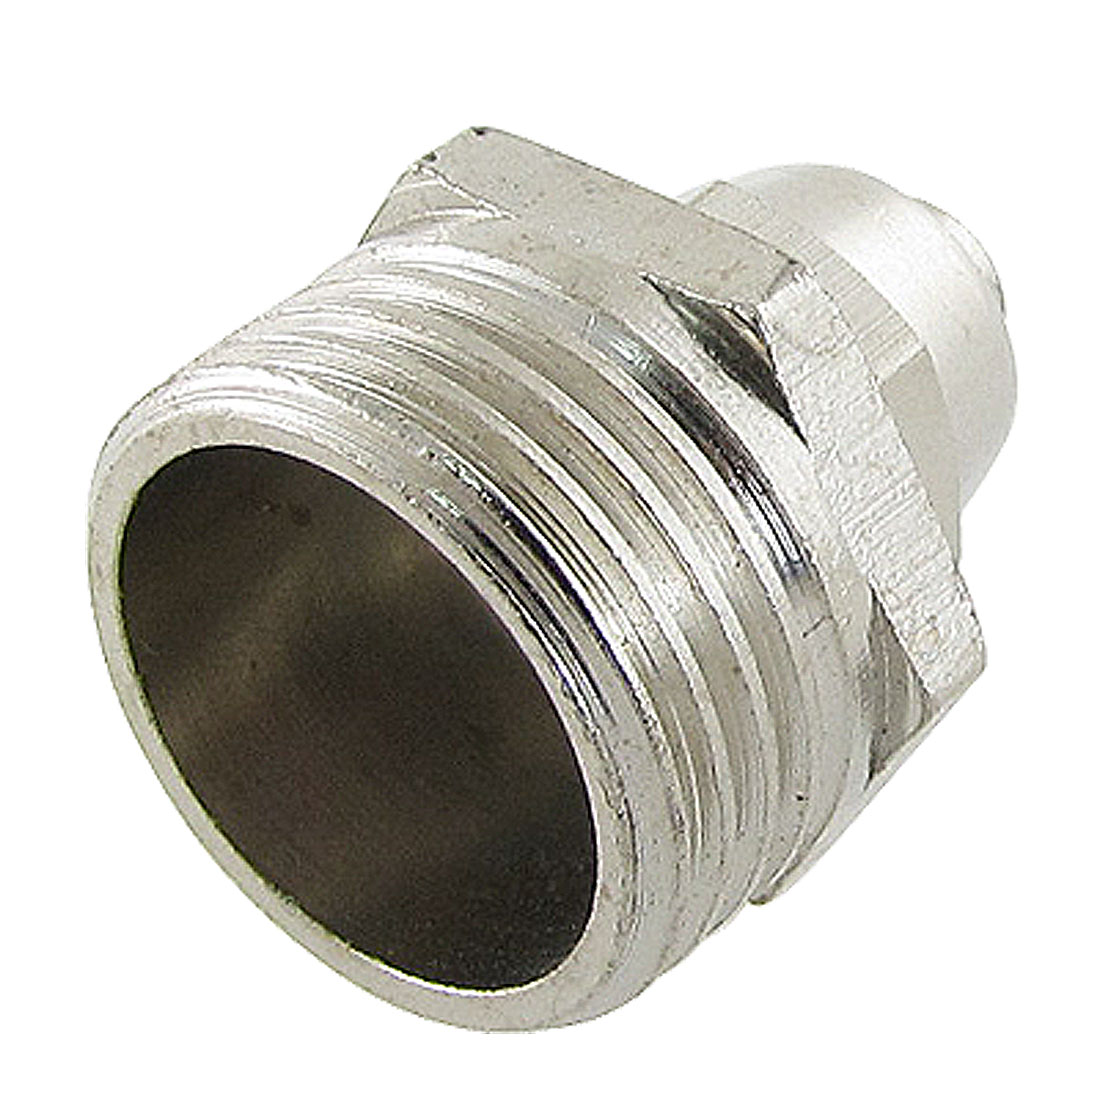 "Metal 4/5"" Male Thread 15/64"" x 5/16"" Air Hose Straight Quick Coupler Fitting"